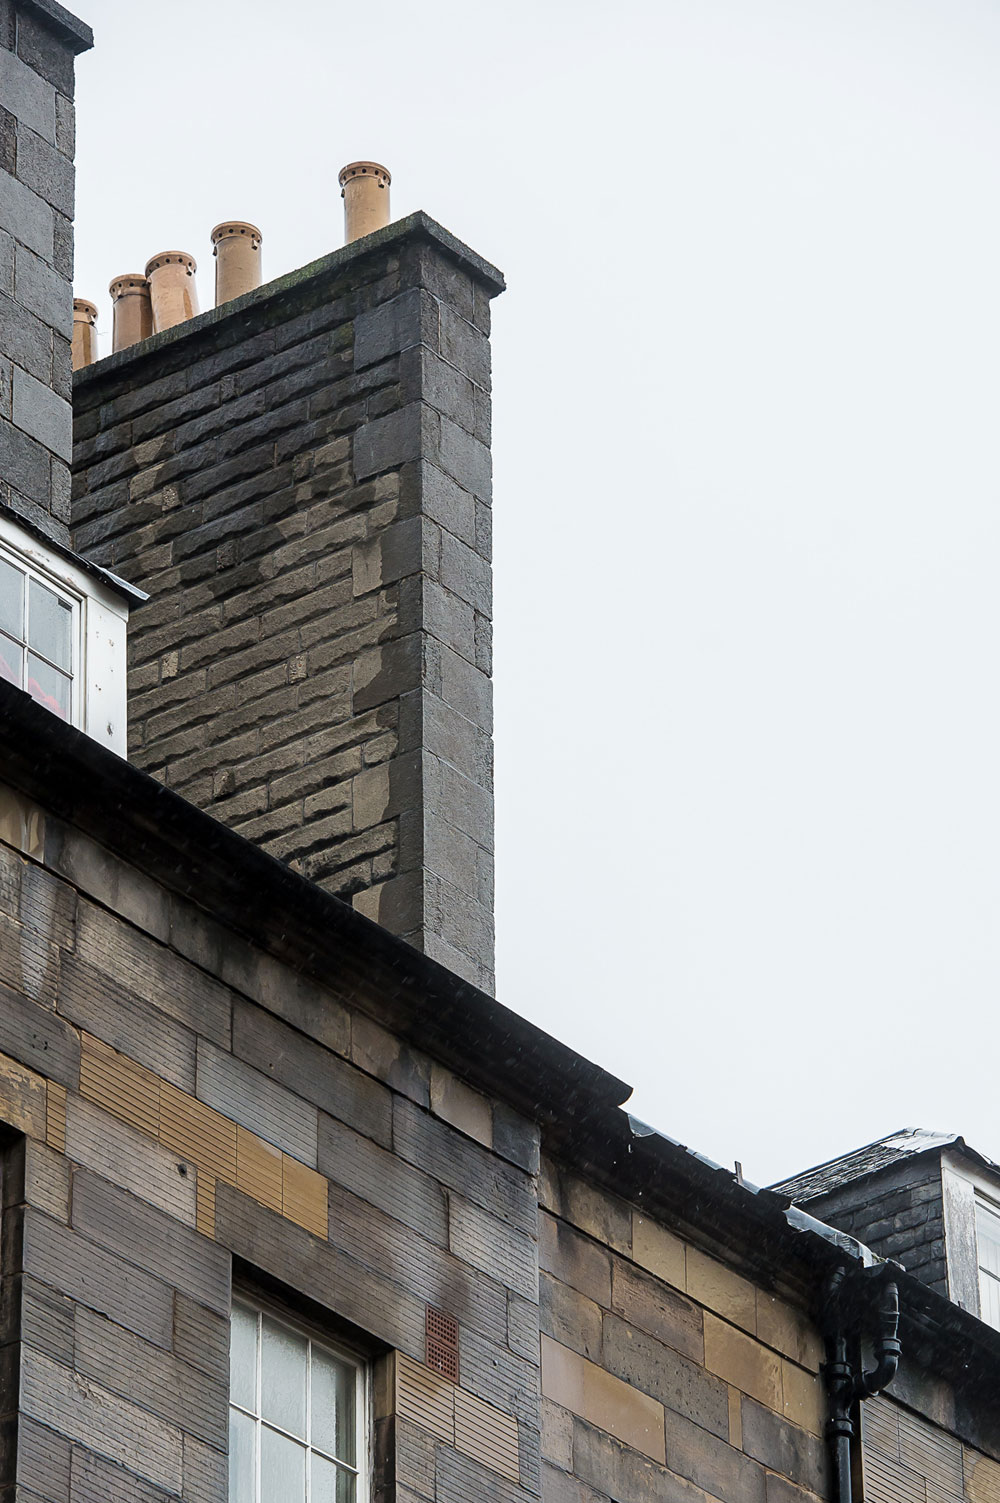 The 2-ft tall chimney pot hit a double decker